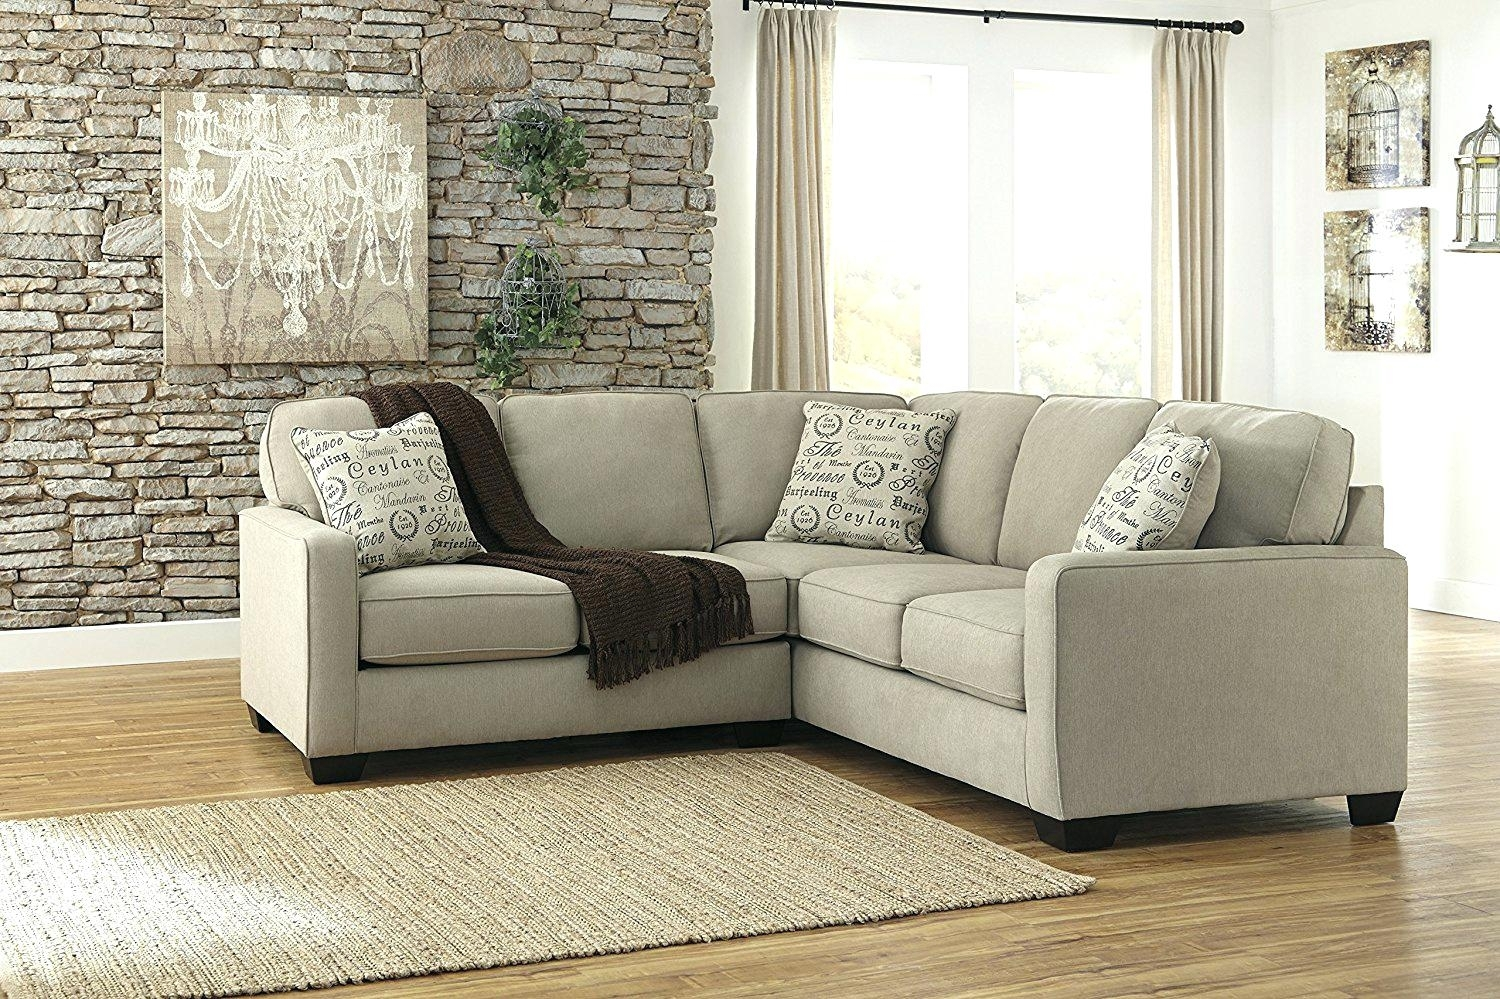 slipcovered sofa canada the kingz 10 best collection of wilmington nc sectional sofas